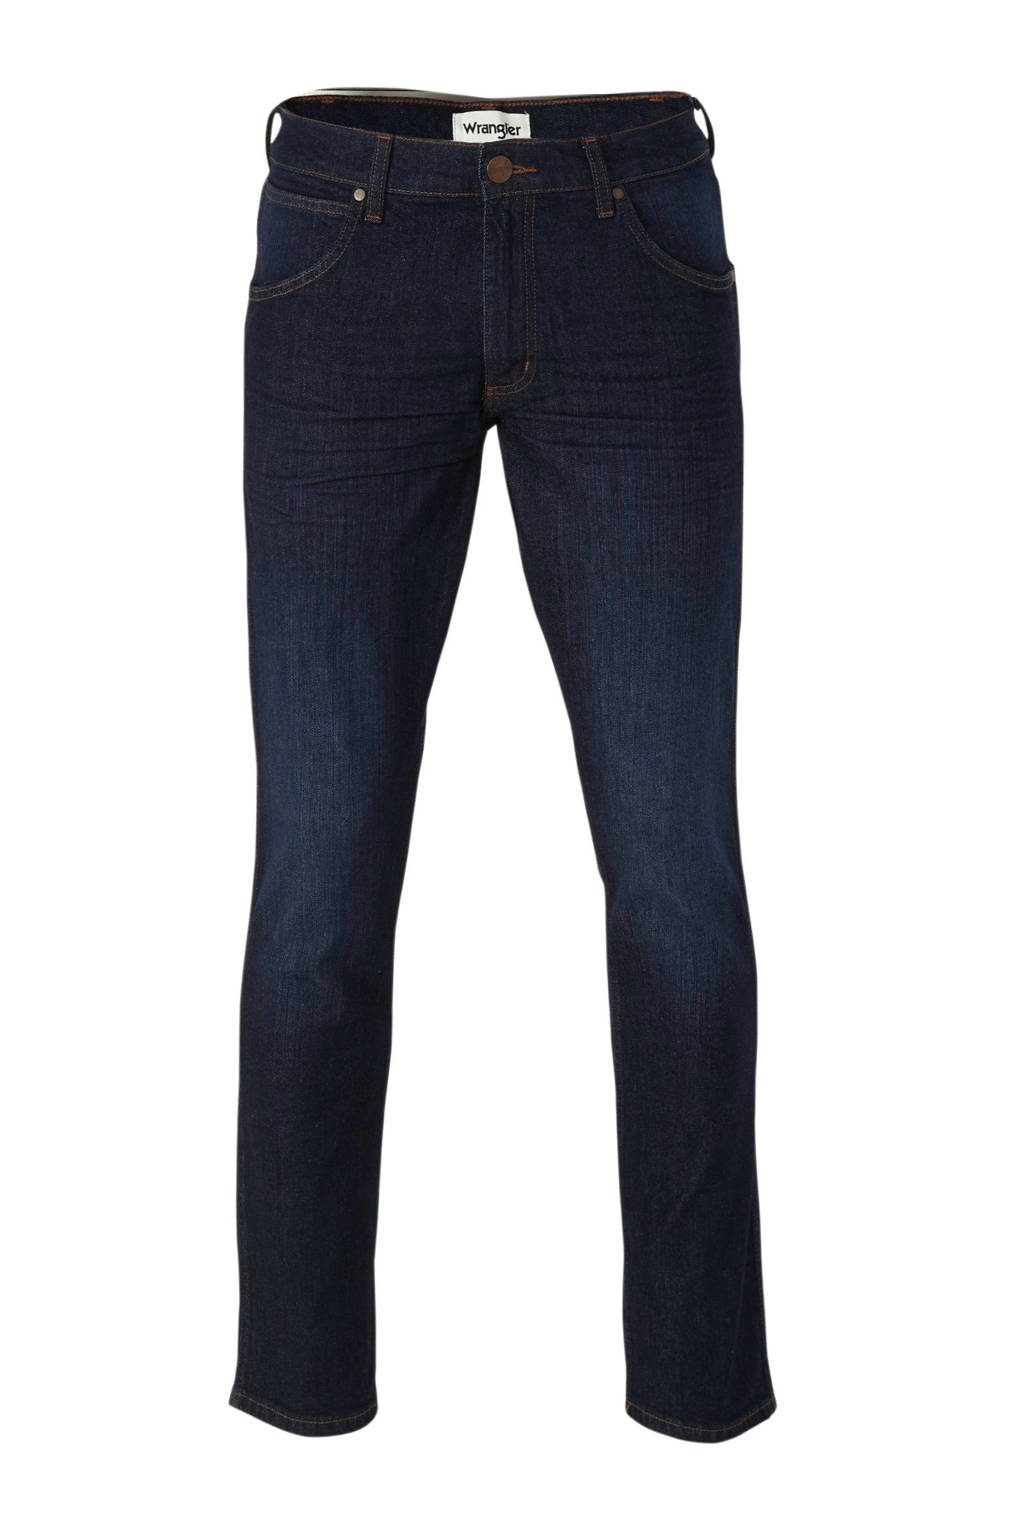 Wrangler straight fit jeans Greensboro easy rider, Easy Rider